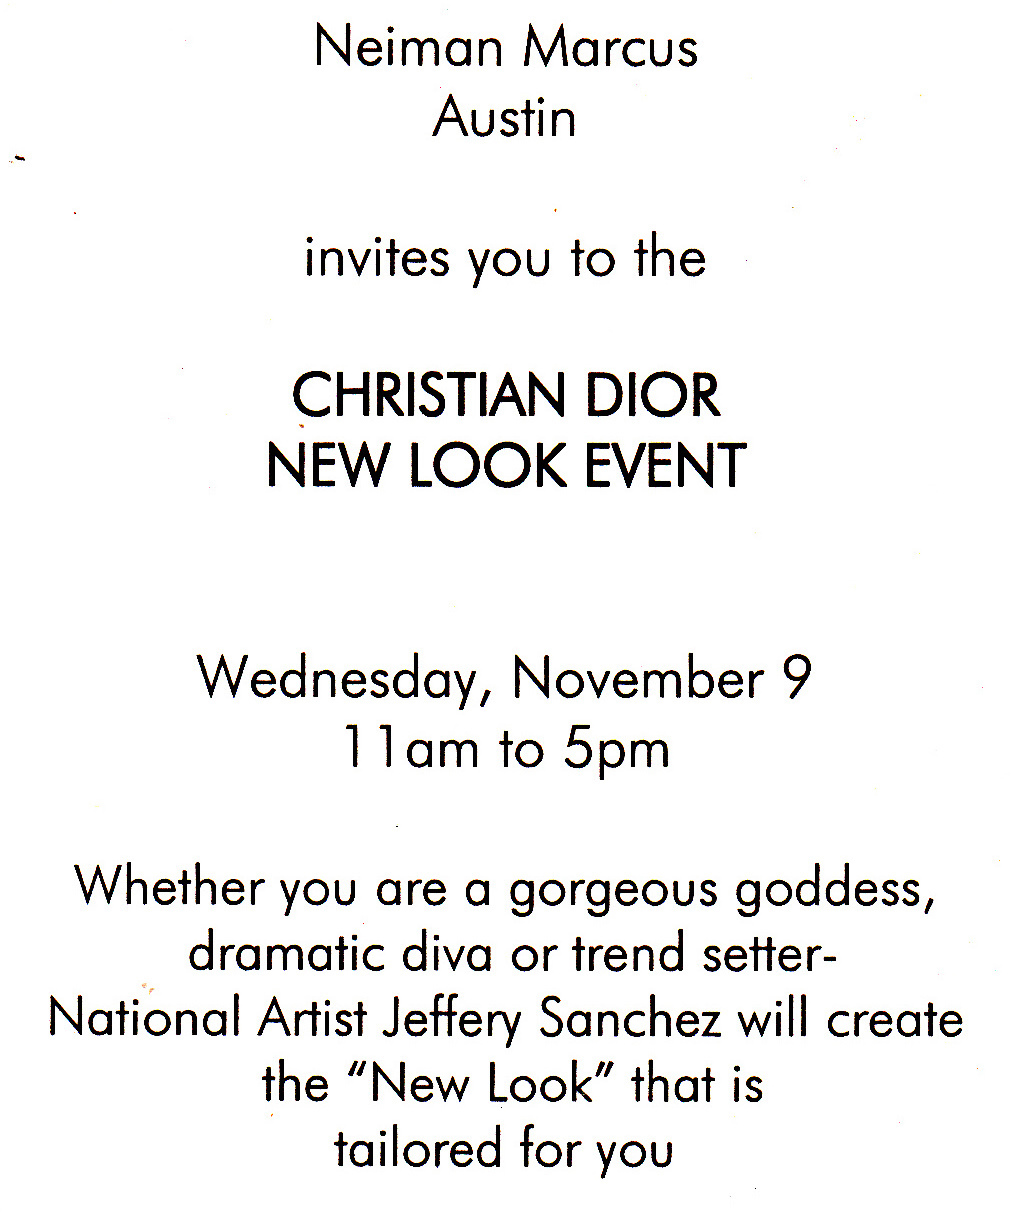 Invitation to Neiman Marcus Christian Dior New Look Event